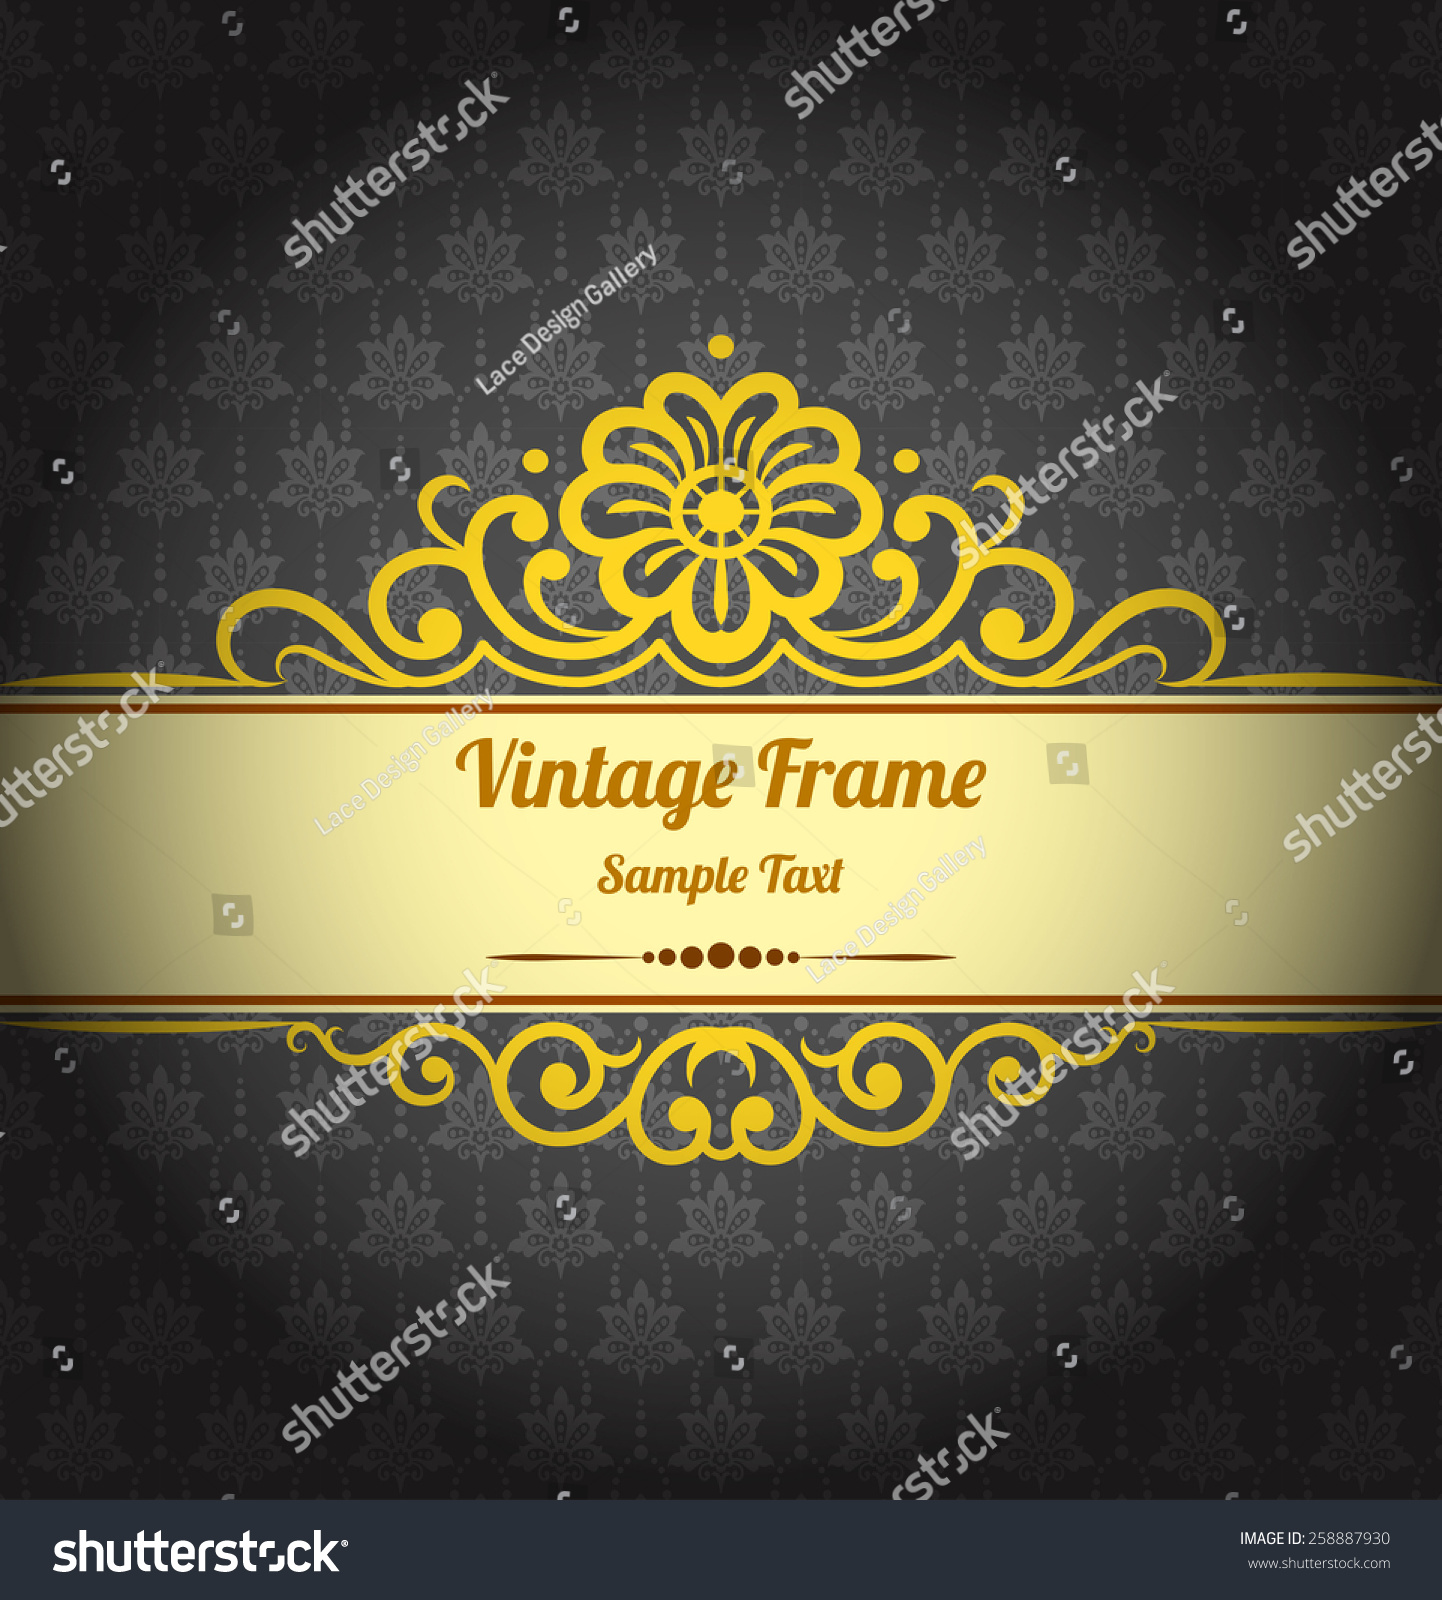 Beautiful Background For Book Cover : Vintage background design elegant book cover stock vector